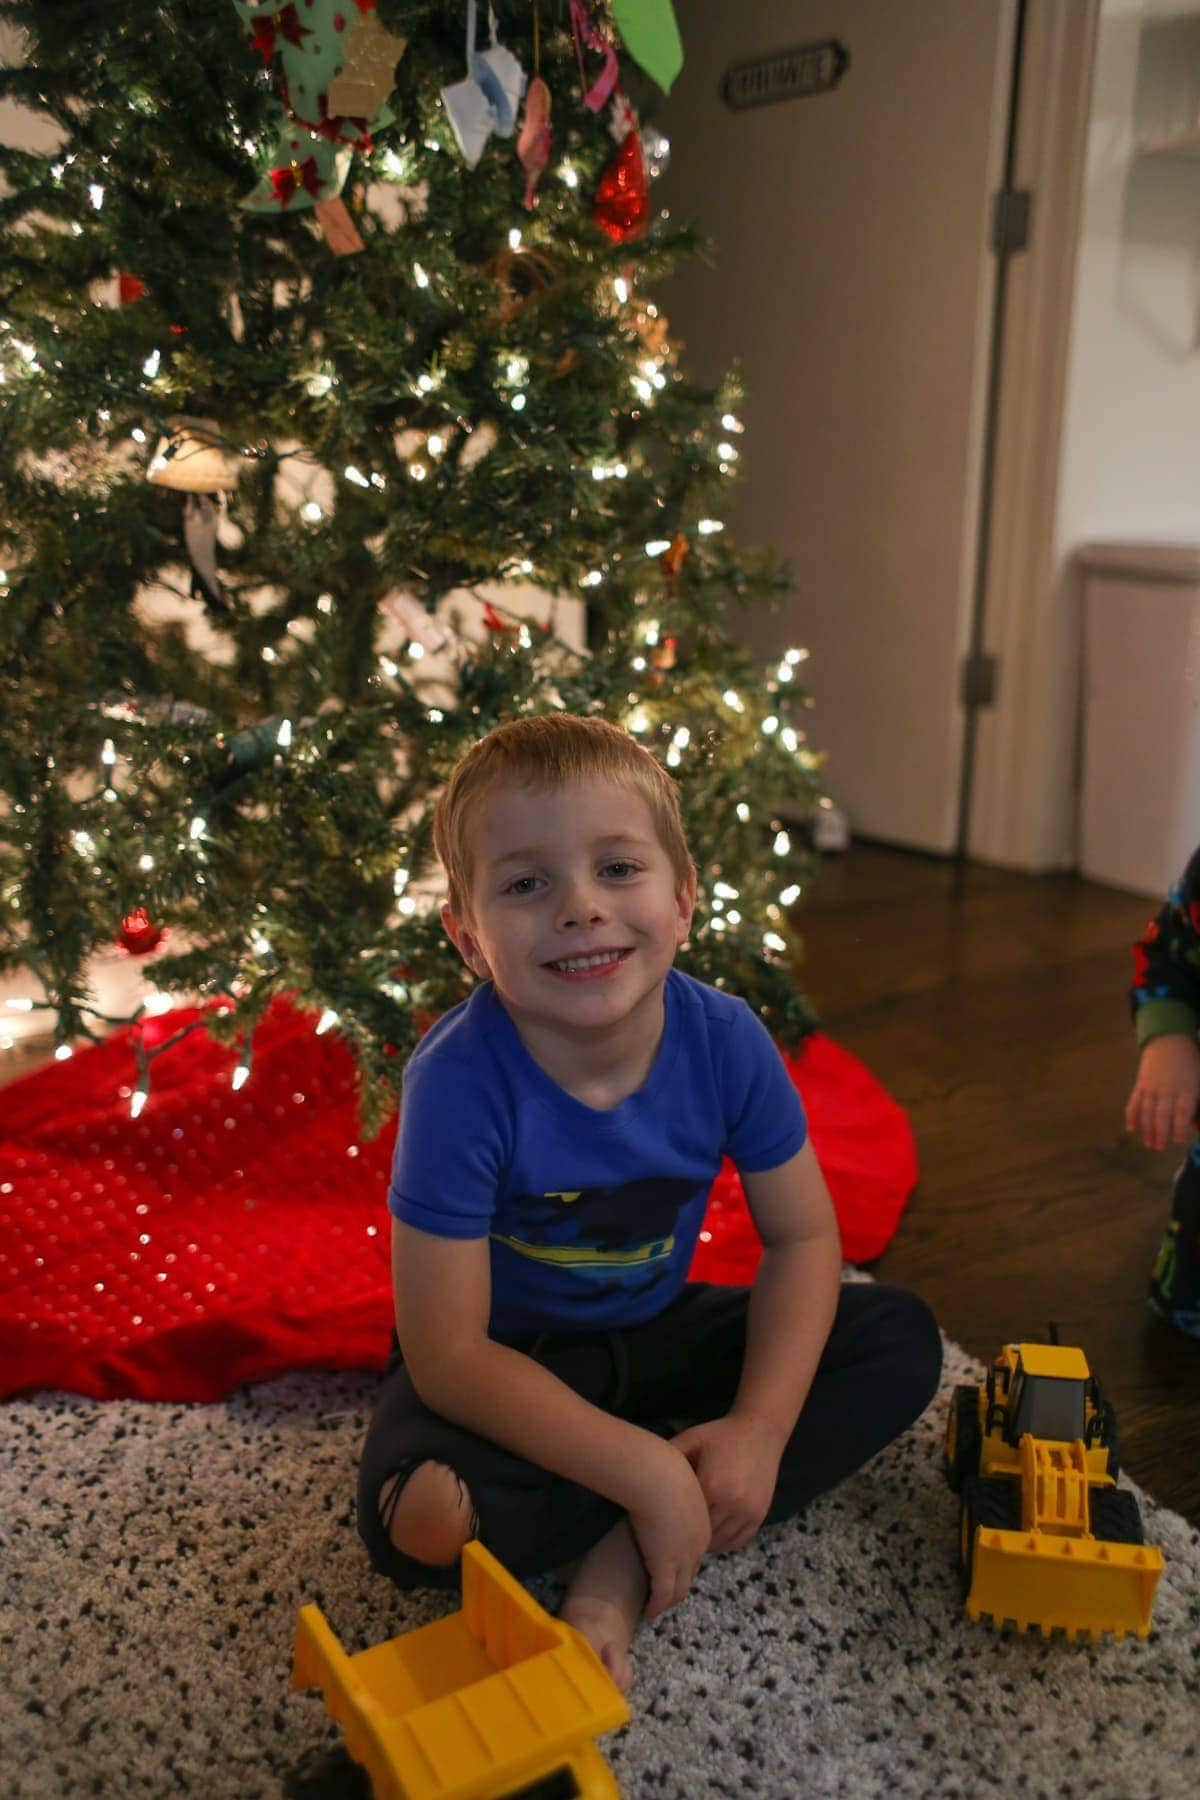 Blake in front of the Christmas tree